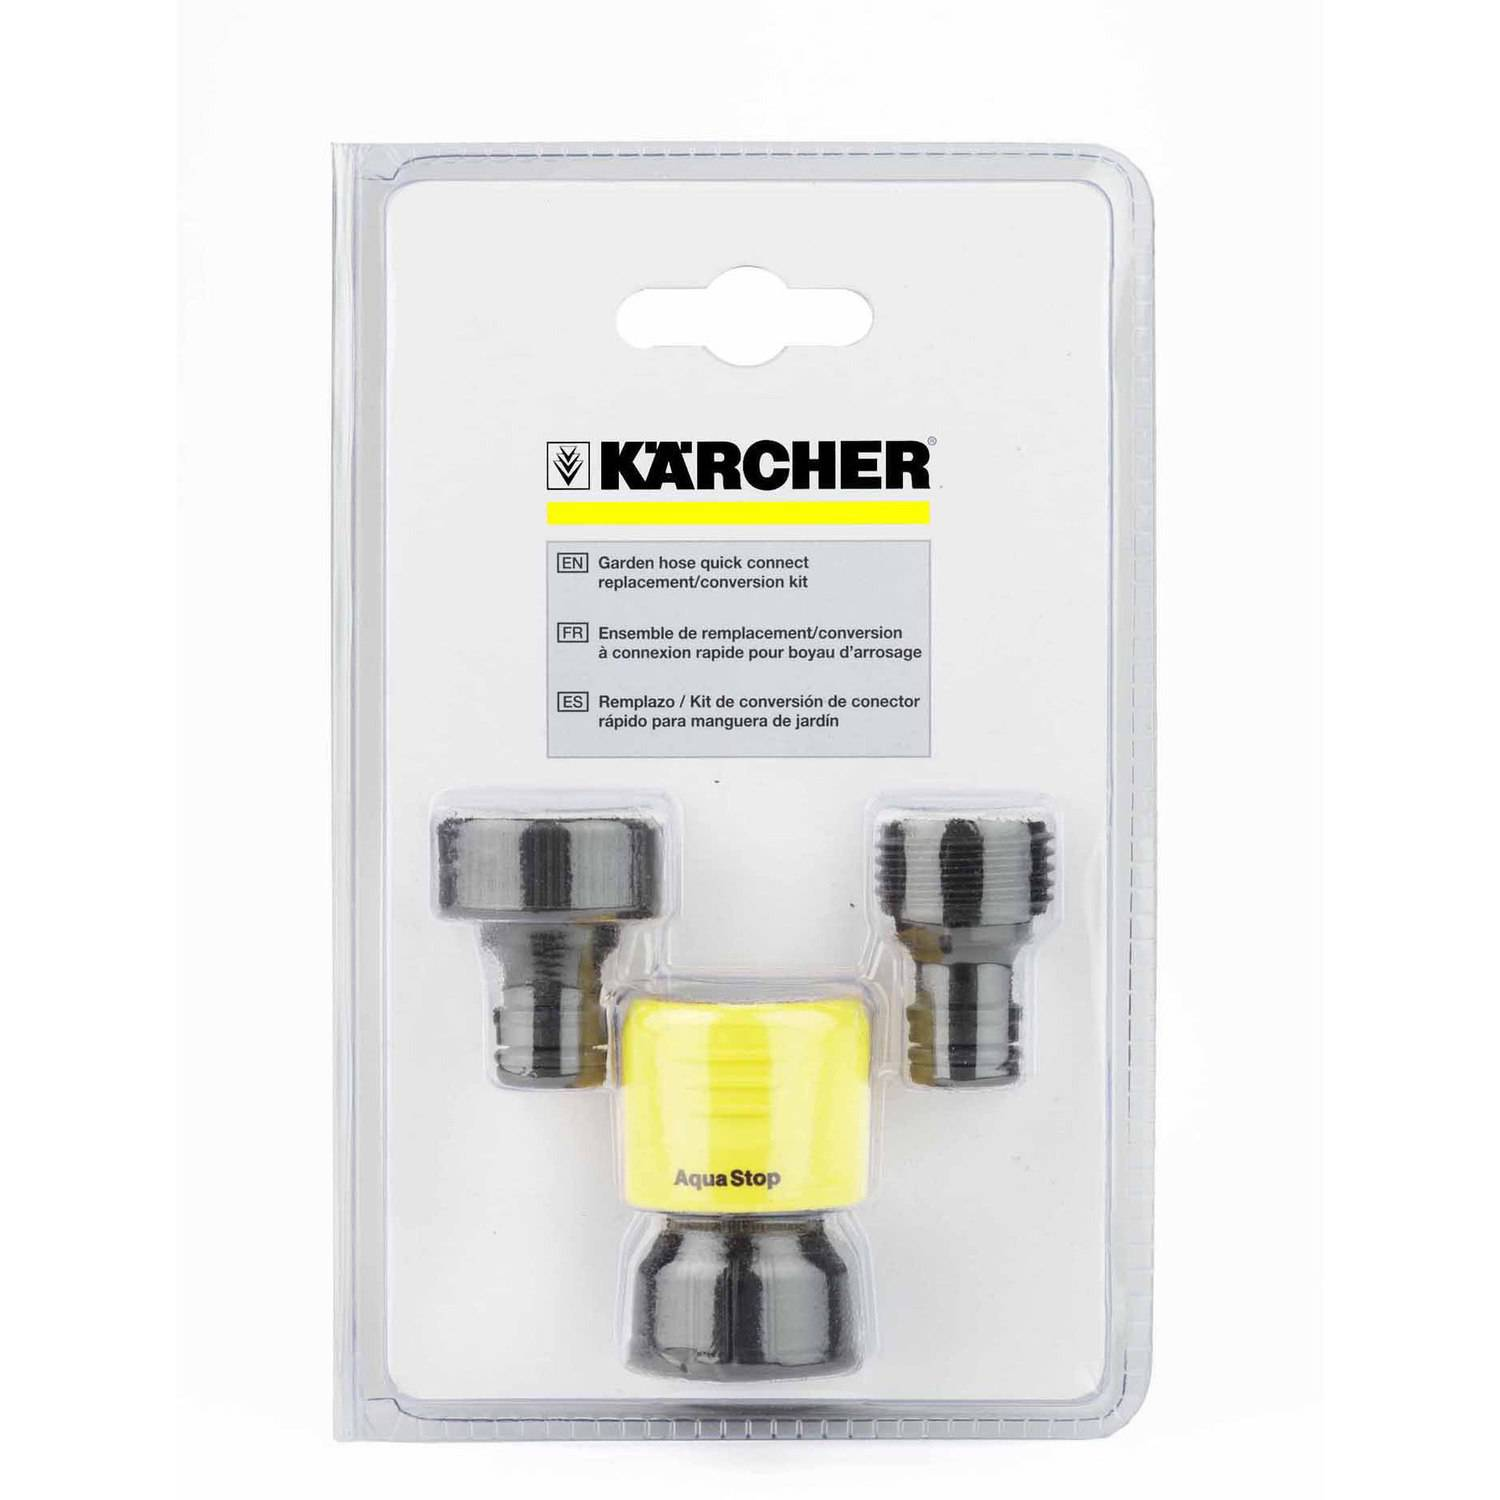 Karcher Quick Connect Replacement Kit for Electric Pressure Washer